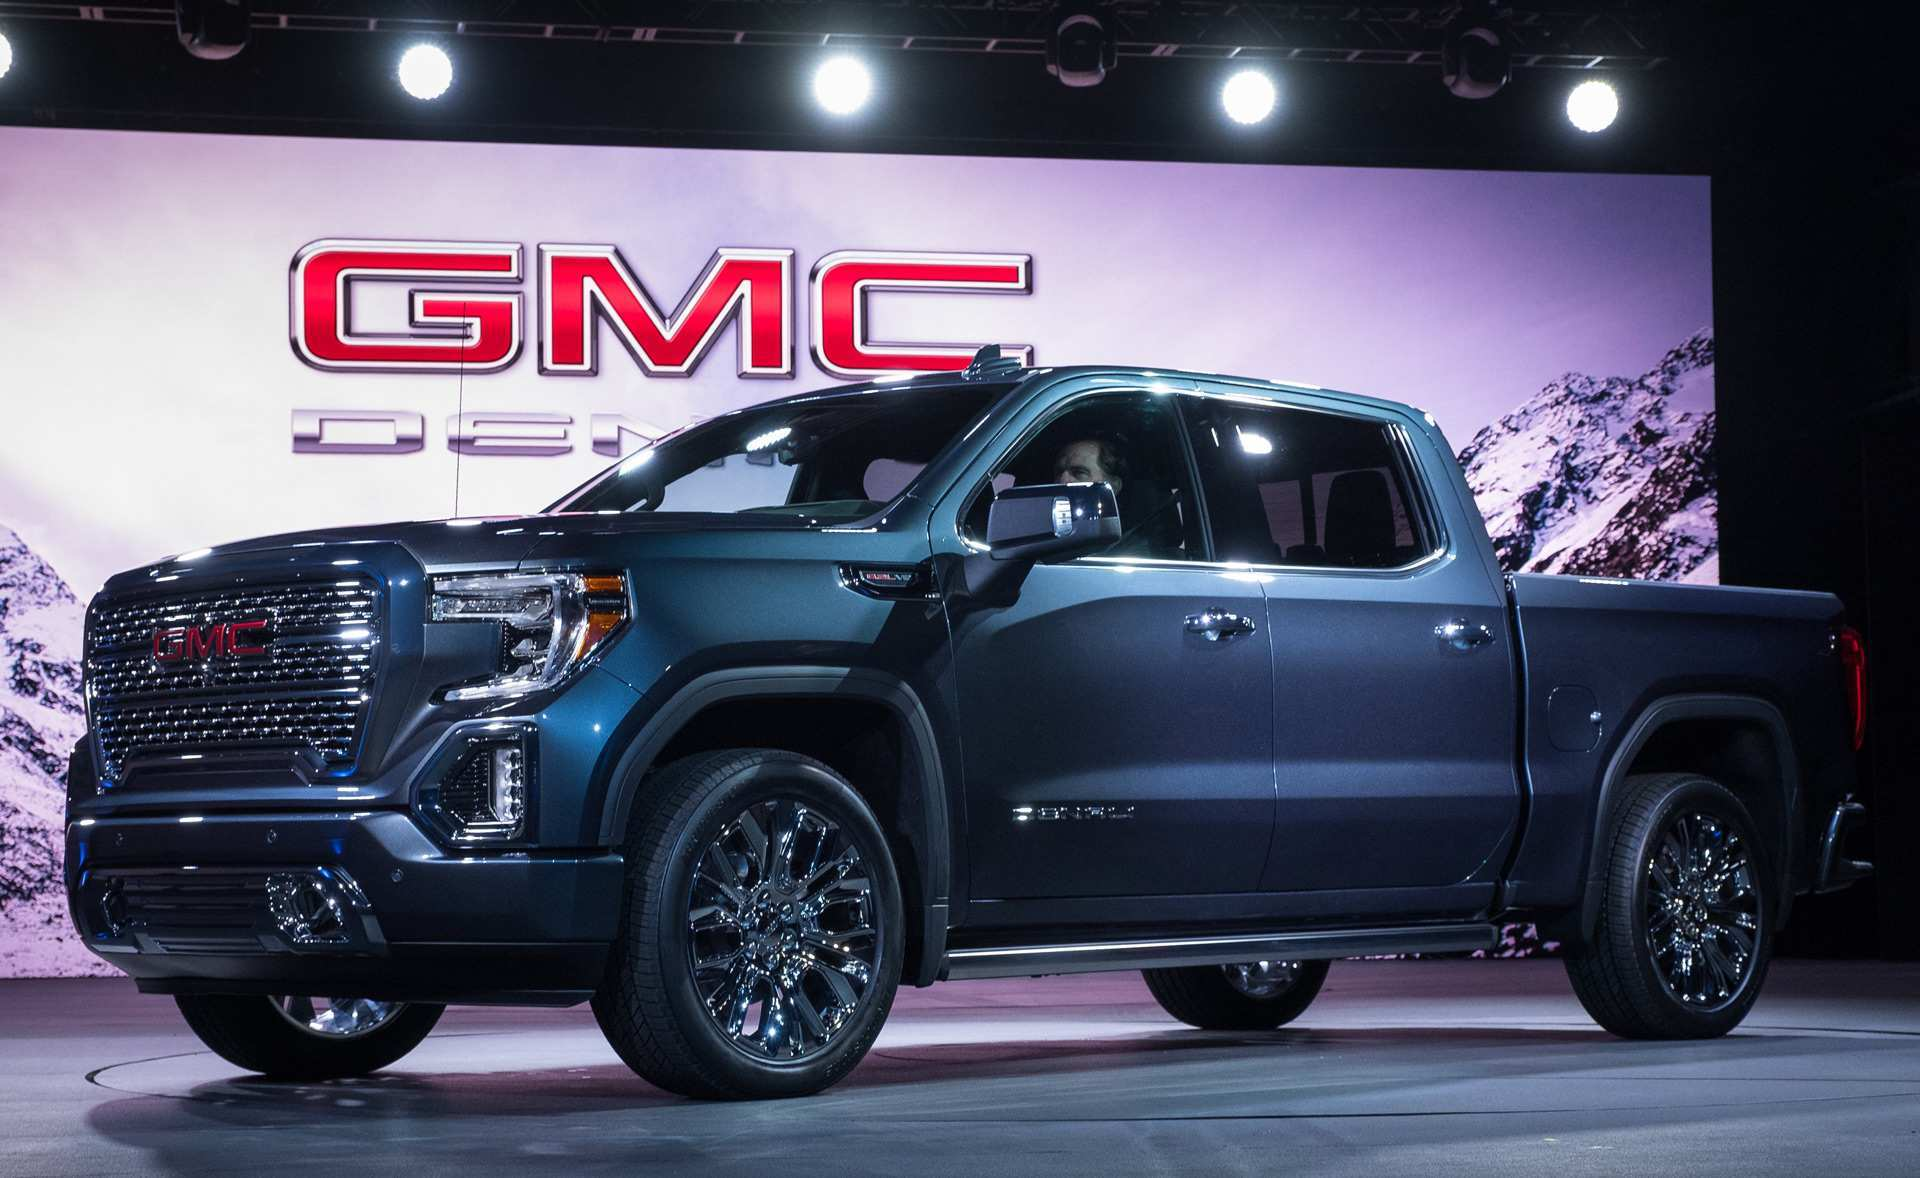 37 New Best Gmc Vs Silverado 2019 Concept Redesign And Review Prices for Best Gmc Vs Silverado 2019 Concept Redesign And Review